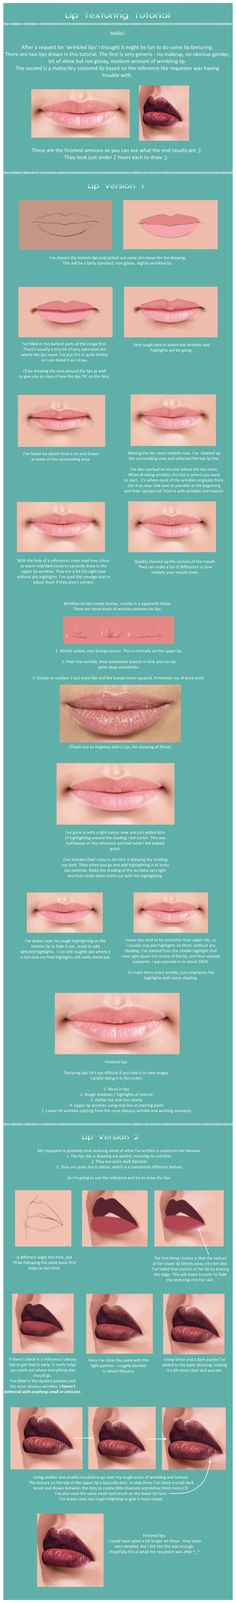 Lip Tutorial by gothic-icecream.deviantart.com on @deviantART